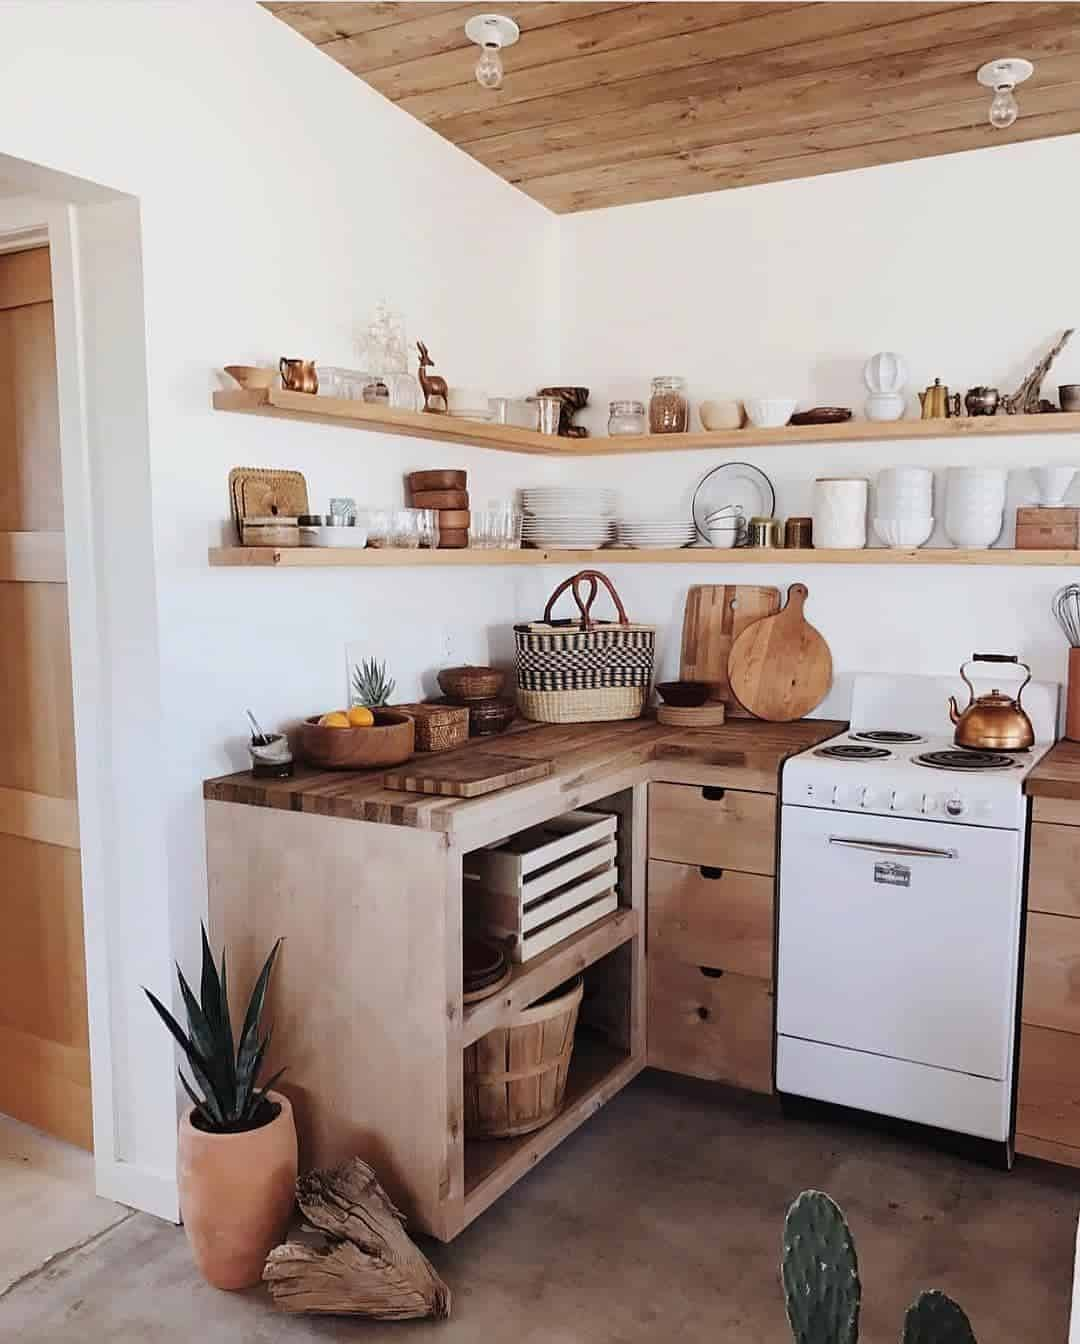 Cozy Kitchen: 20 Cozy Kitchen Designs With Wood Accent